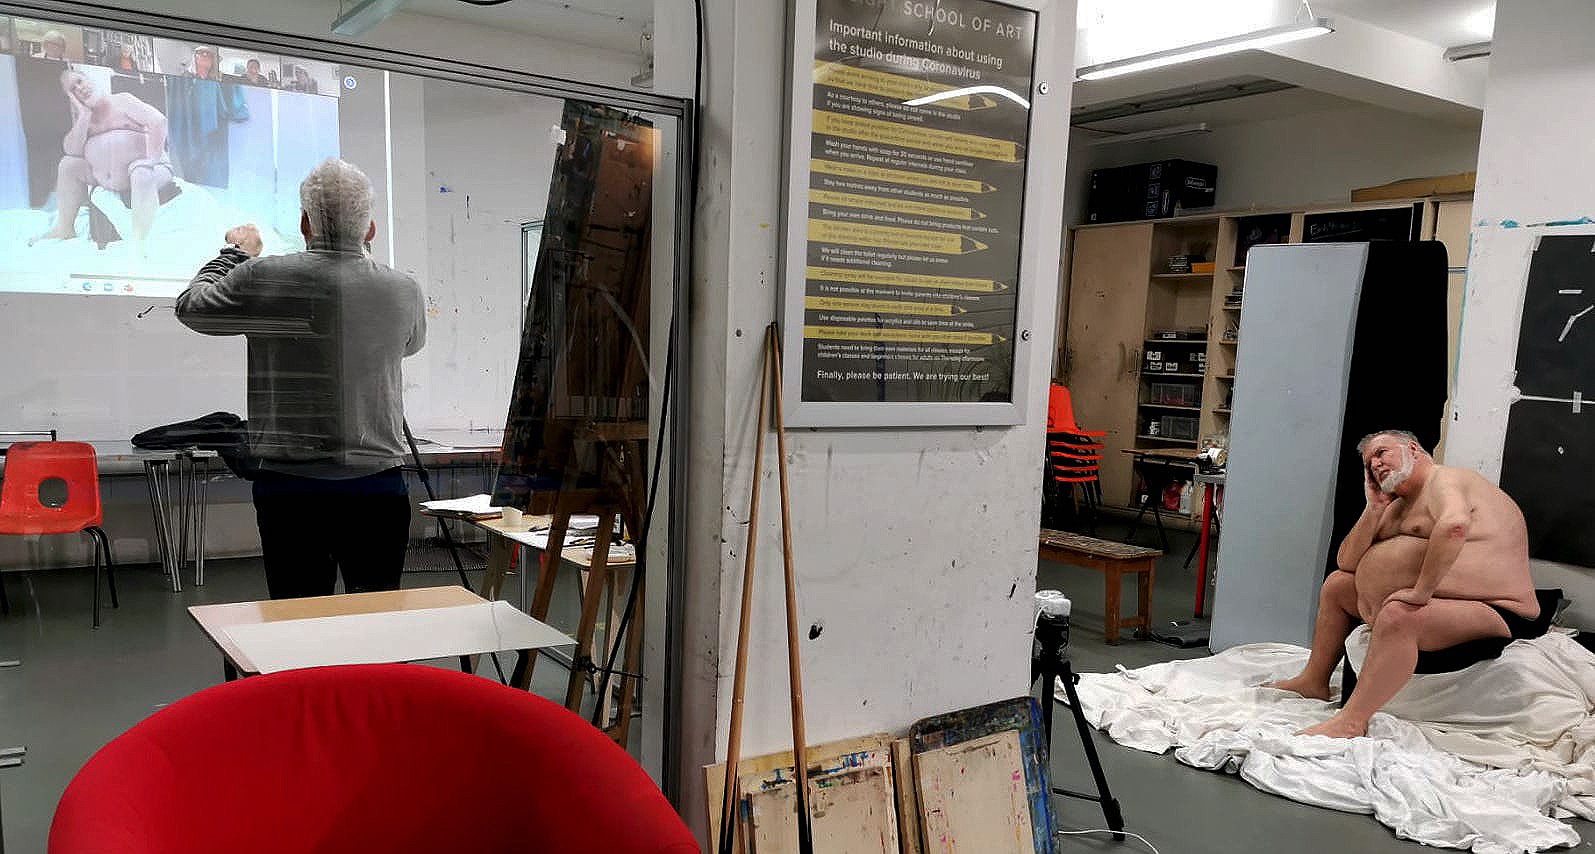 Online life drawing classes at Insight School of Art